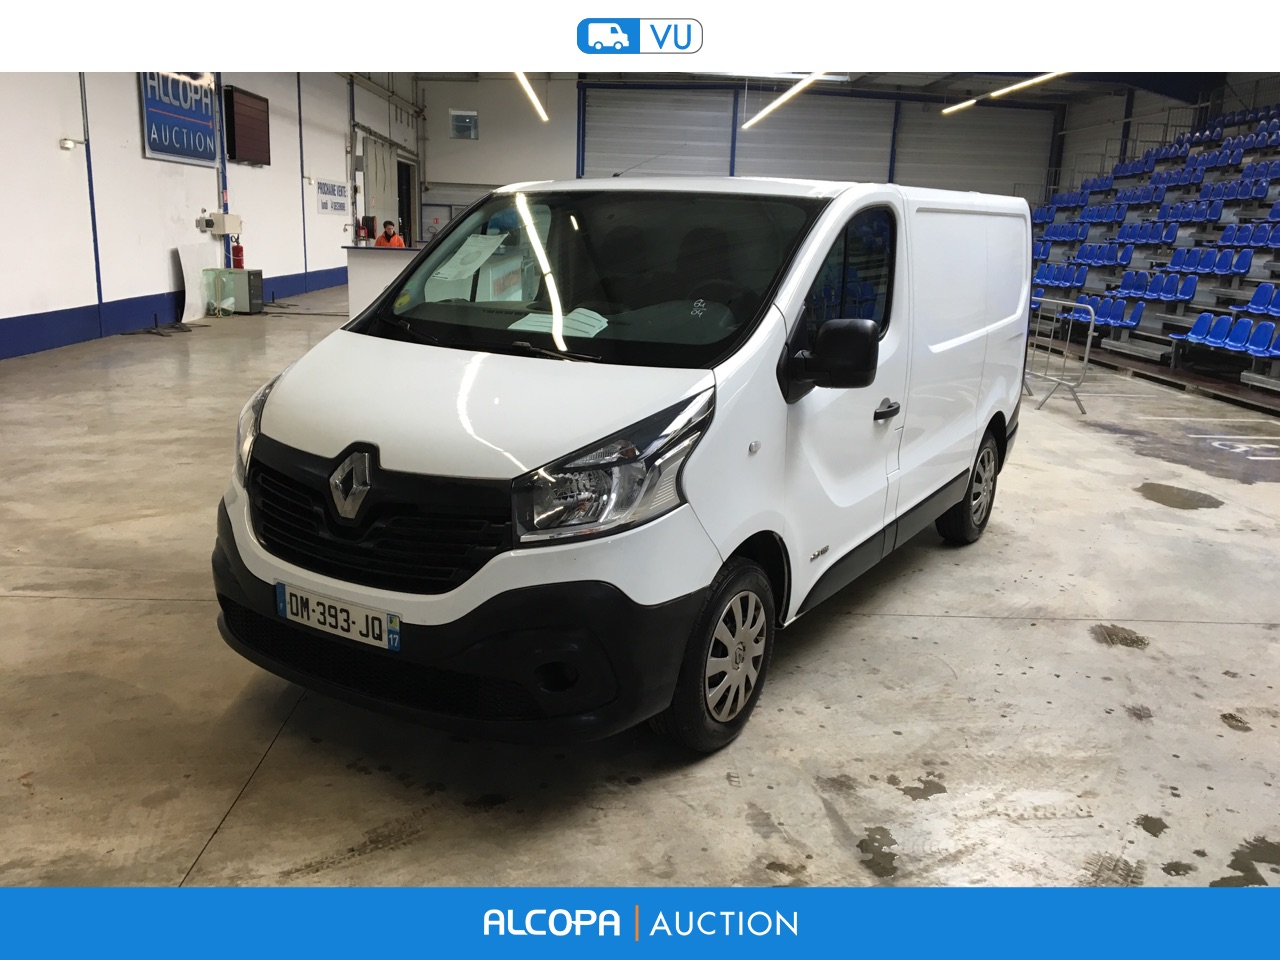 renault trafic trafic fg l1h1 1200 dci 115 grand confort beauvais alcopa auction. Black Bedroom Furniture Sets. Home Design Ideas